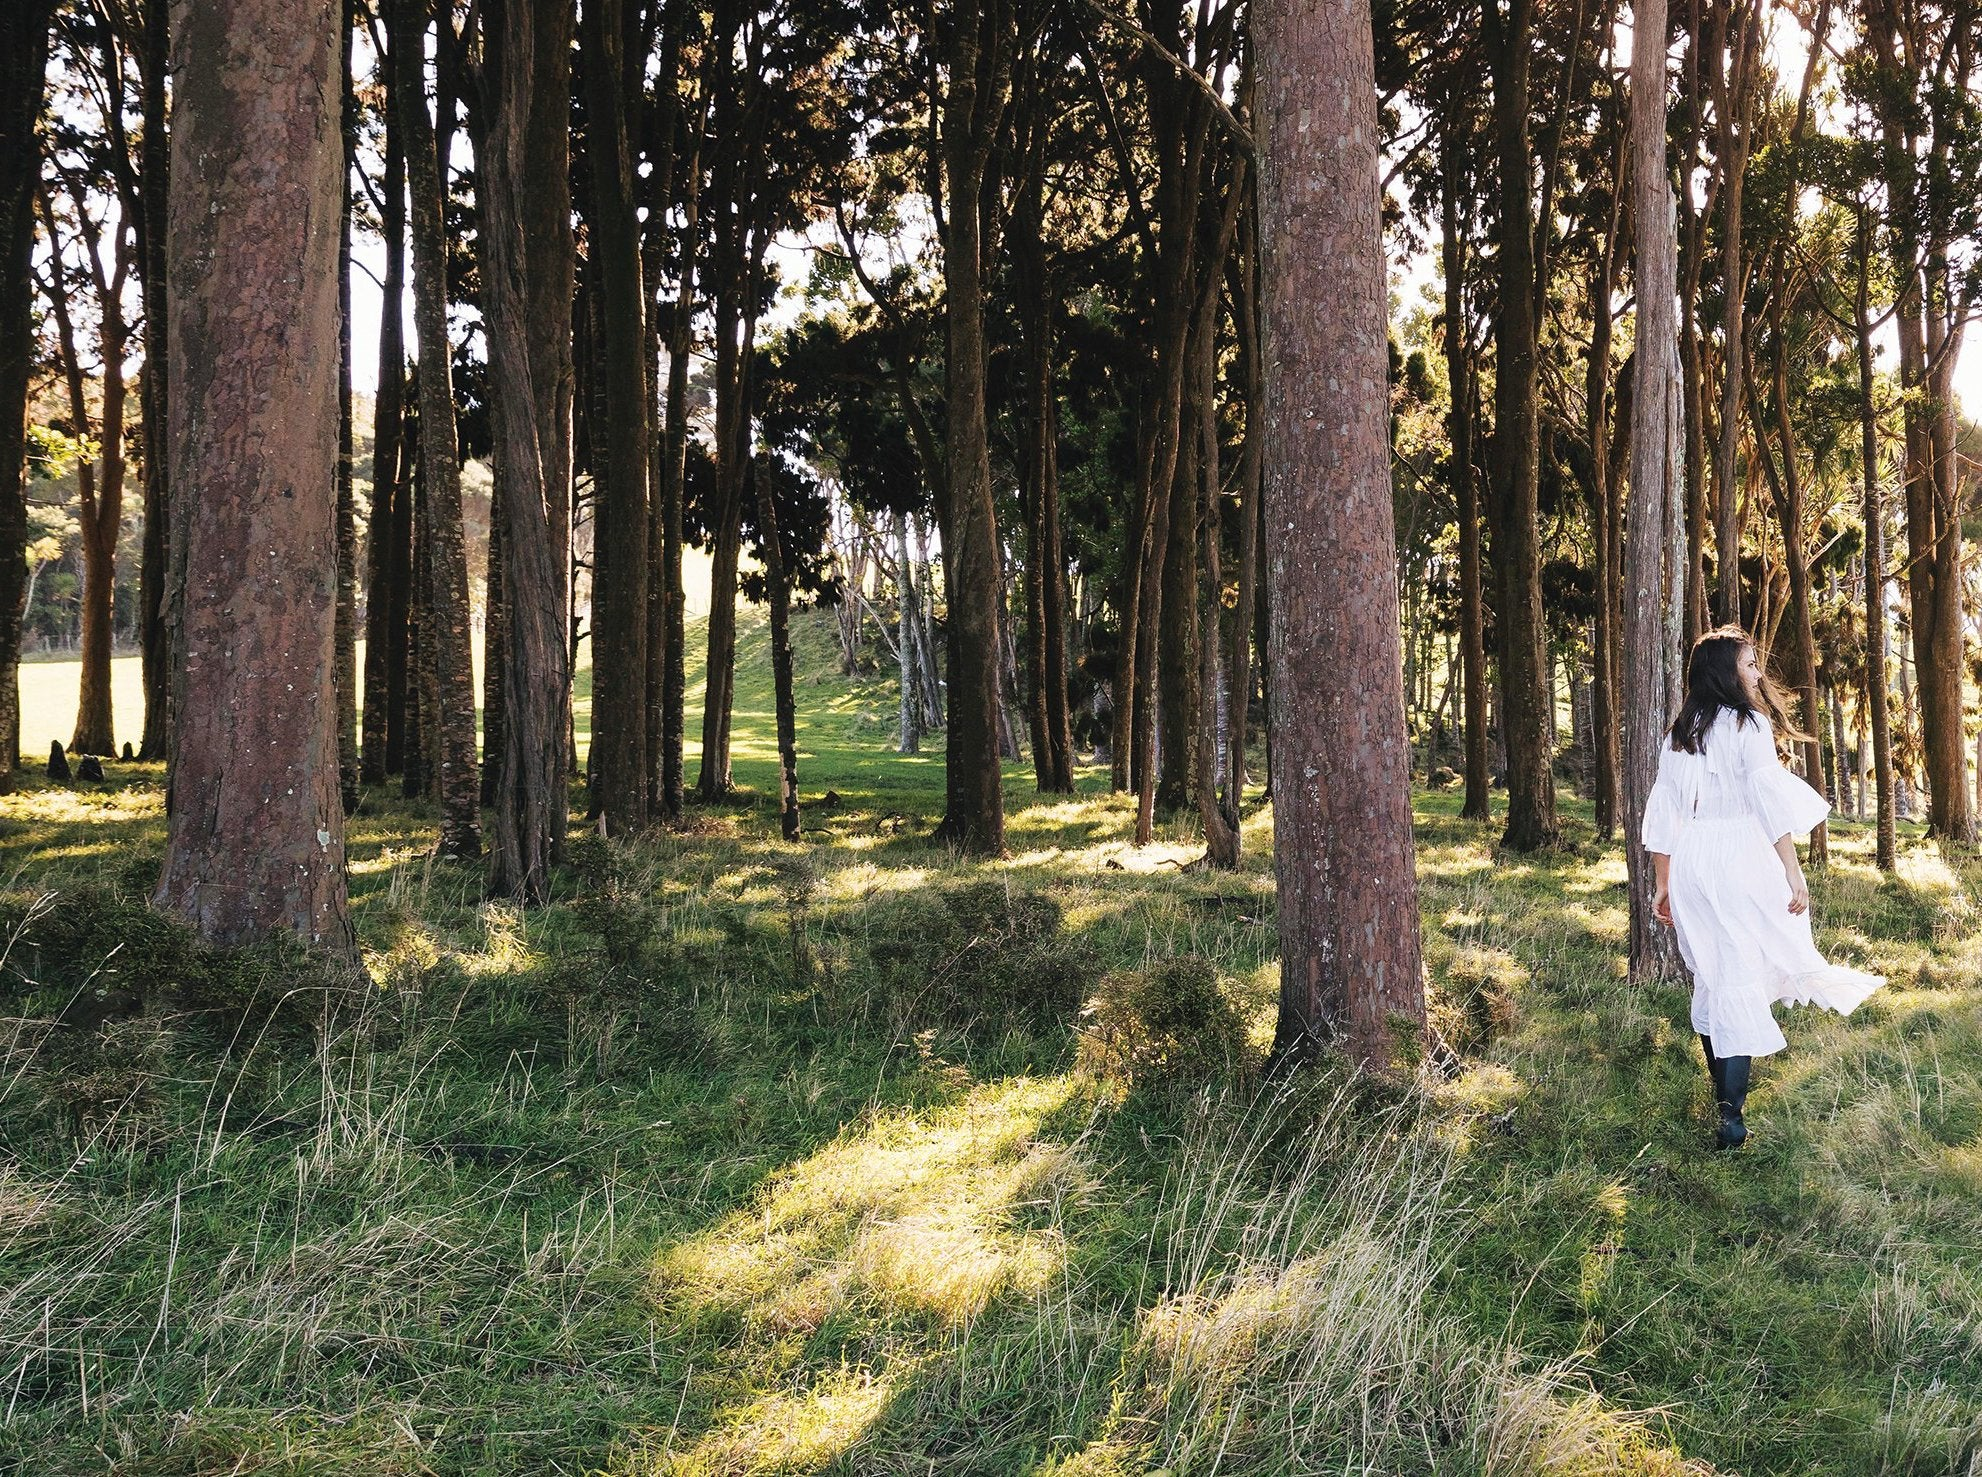 Woman in white dress walking in calm forest